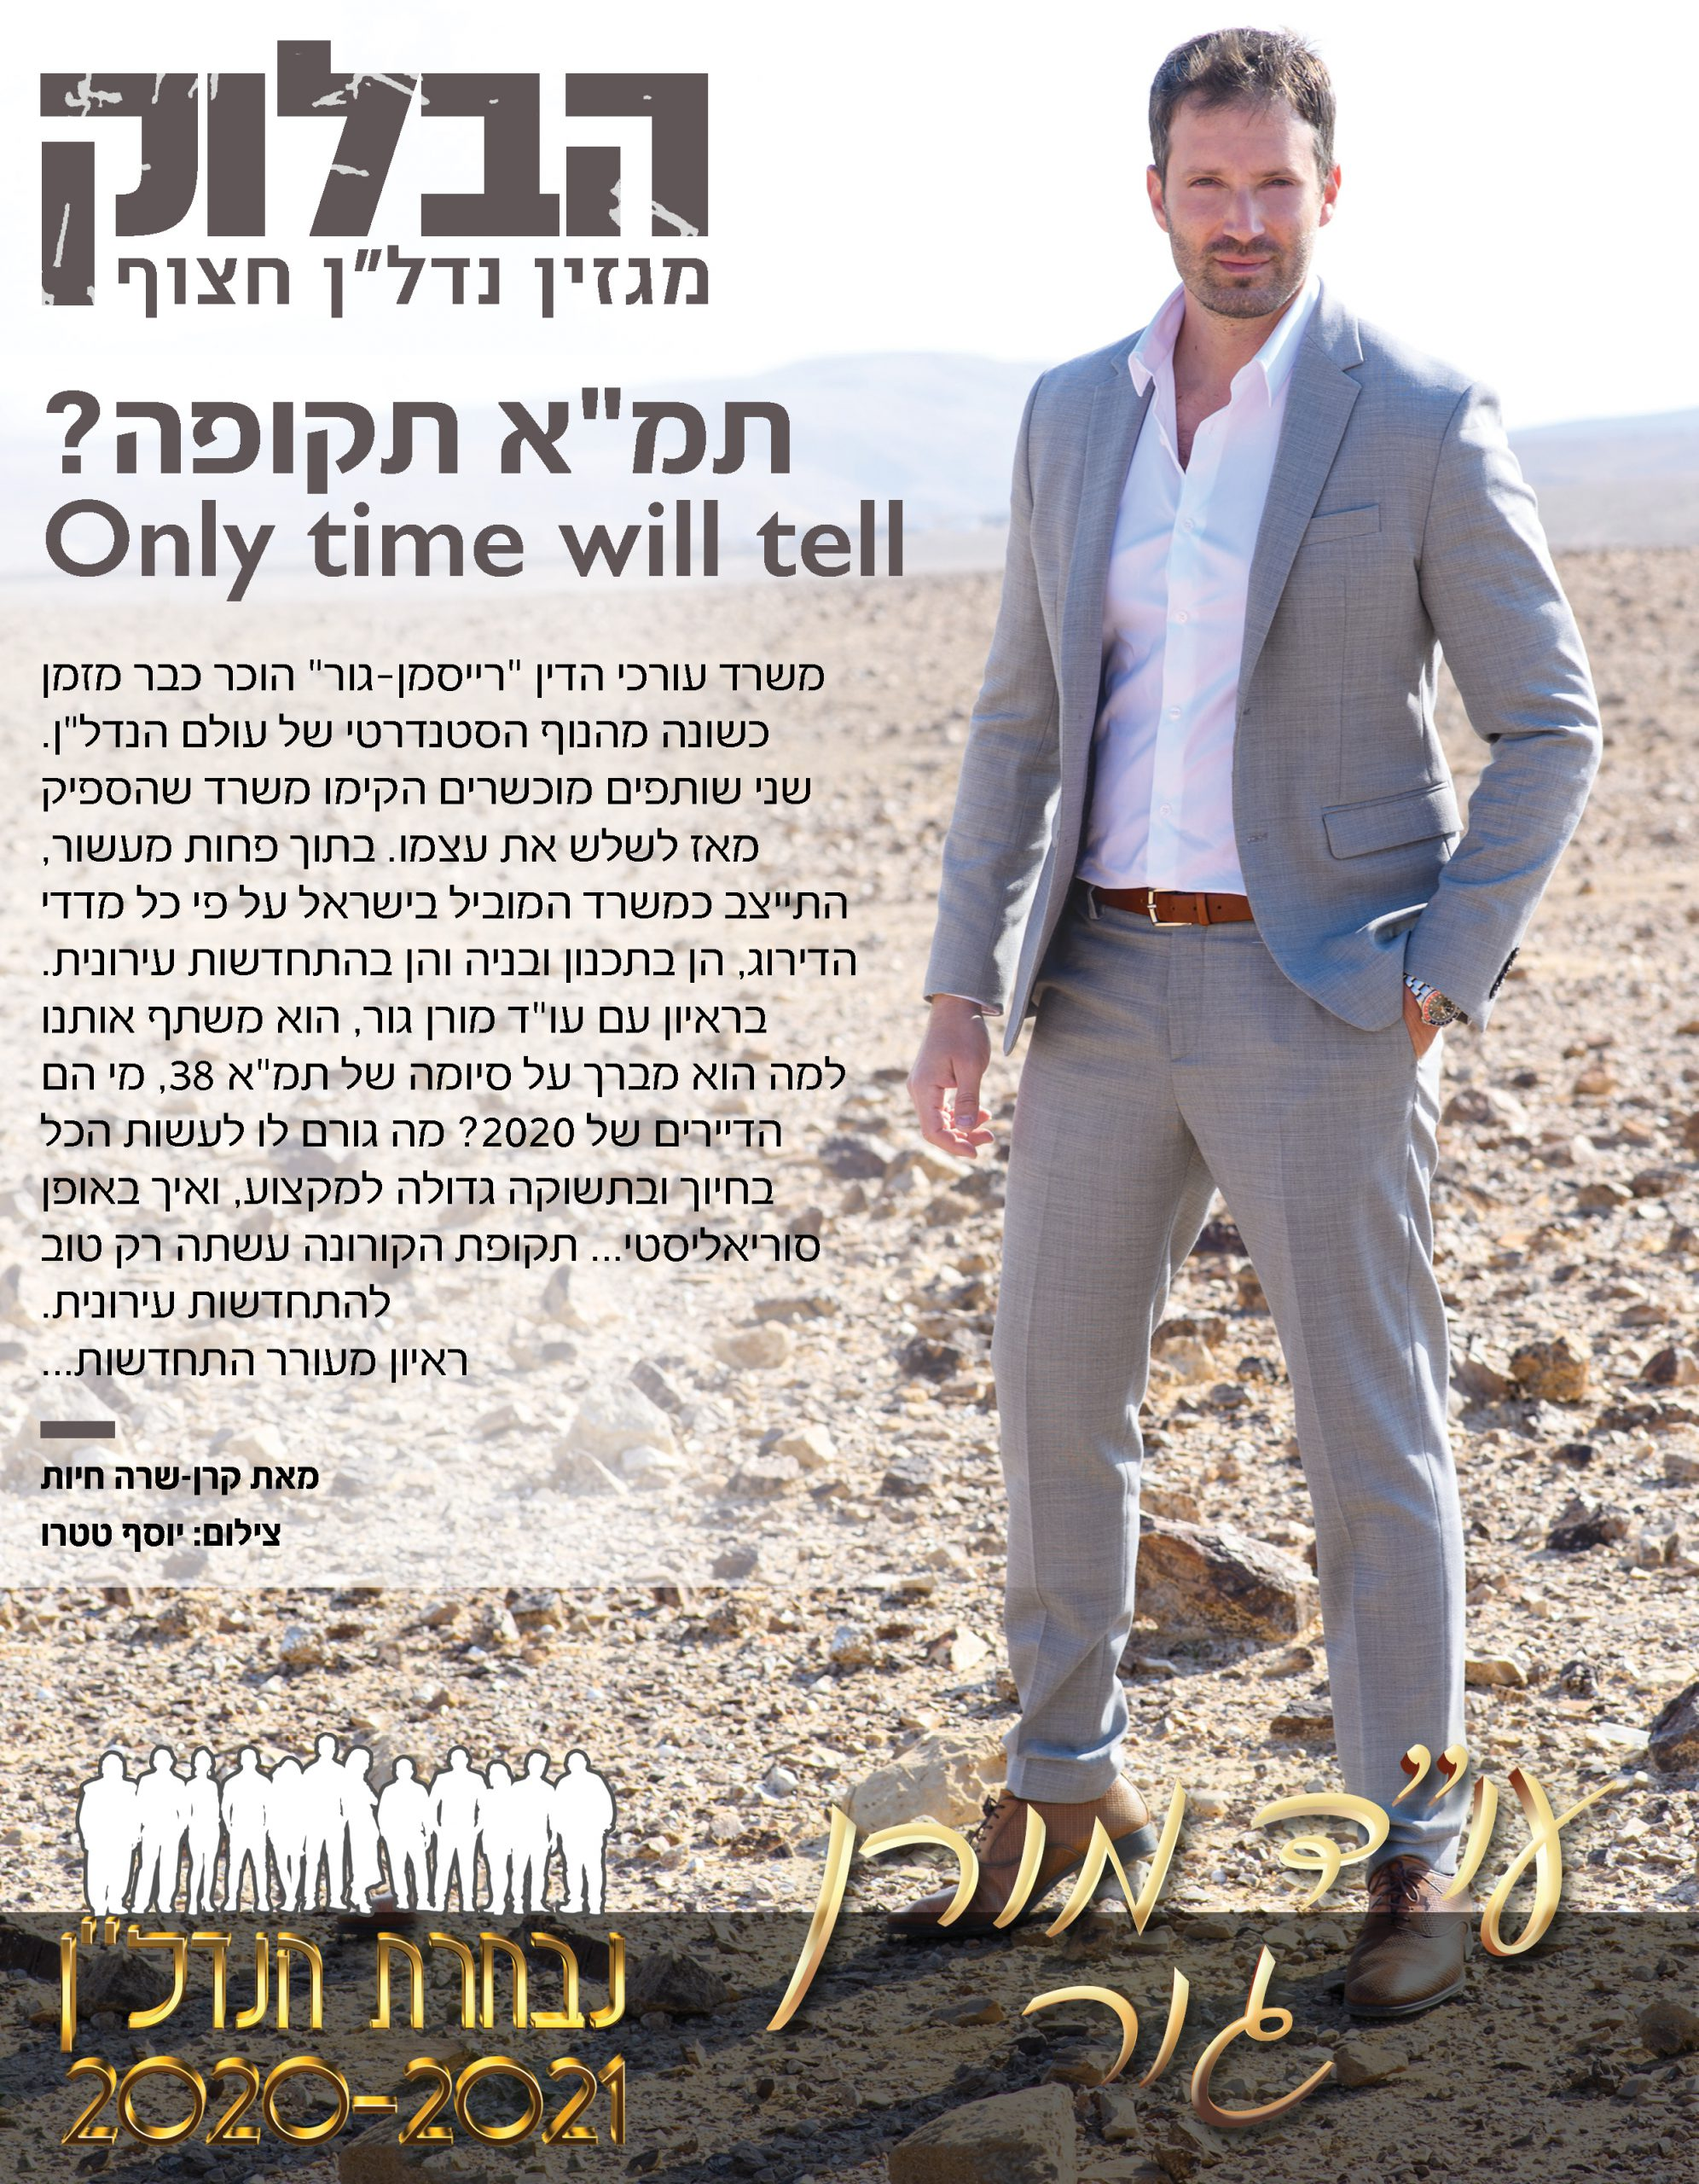 "תמ""א תקופה? Only time will tell"